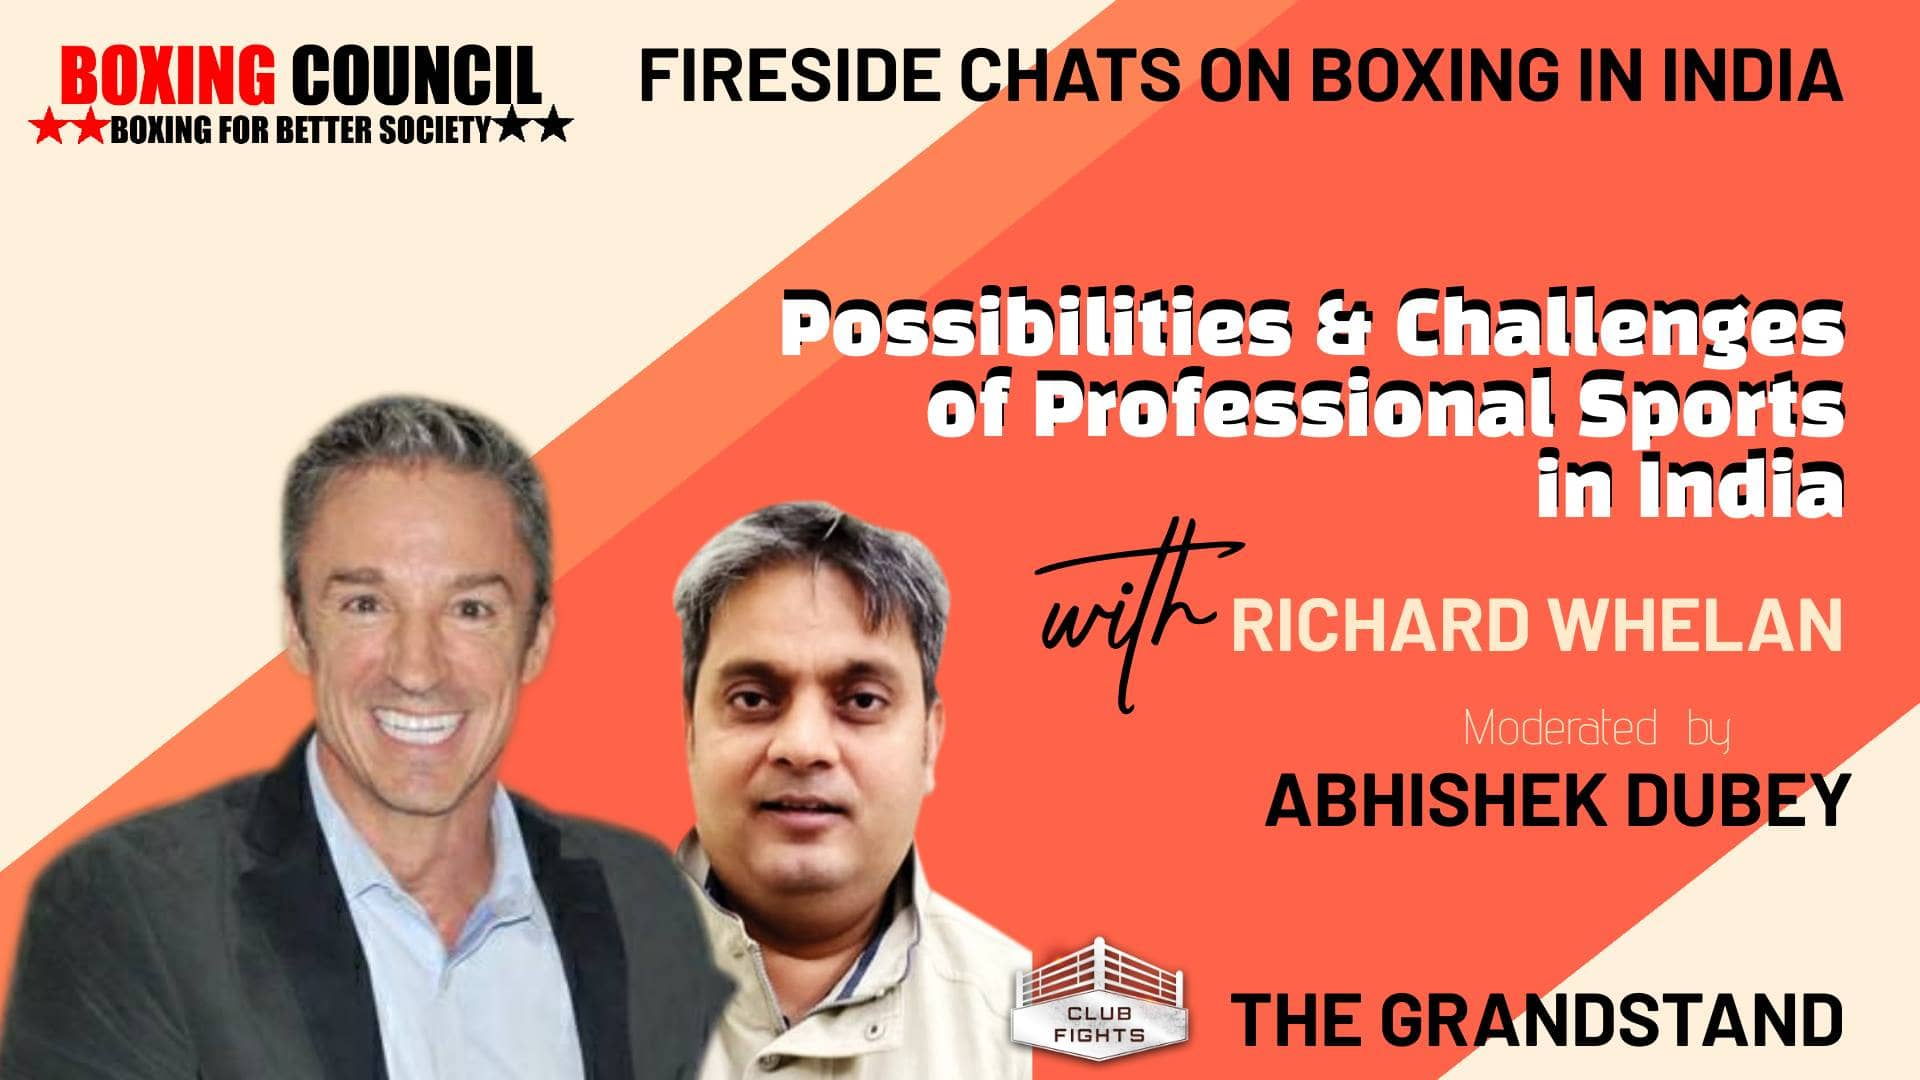 Fireside-Chats-on-Boxing-in-India-Richard-Whelan-Video